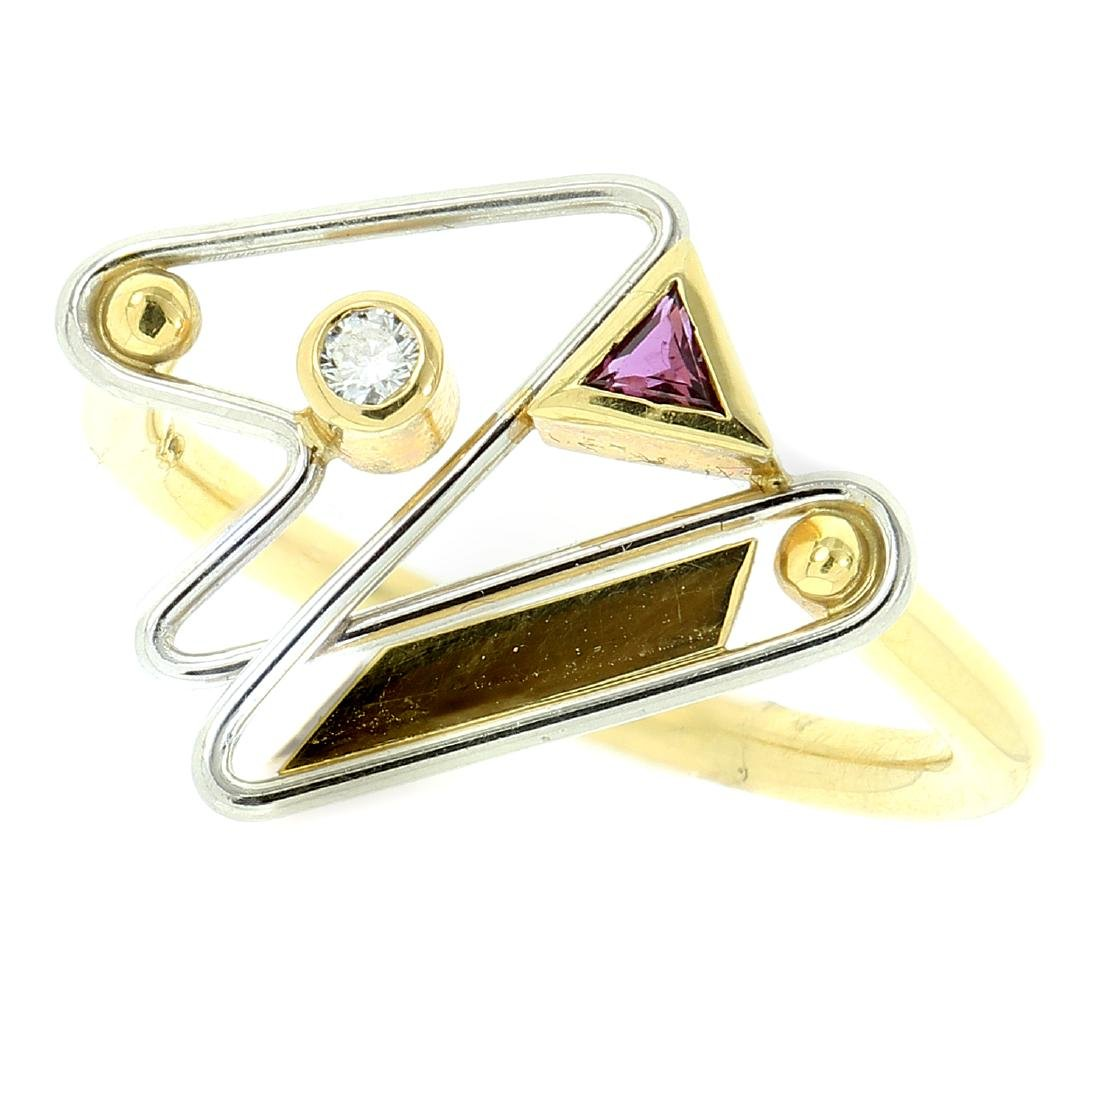 AN ABSTRACT DIAMOND AND PINK TOURMALINE RING in 18ct